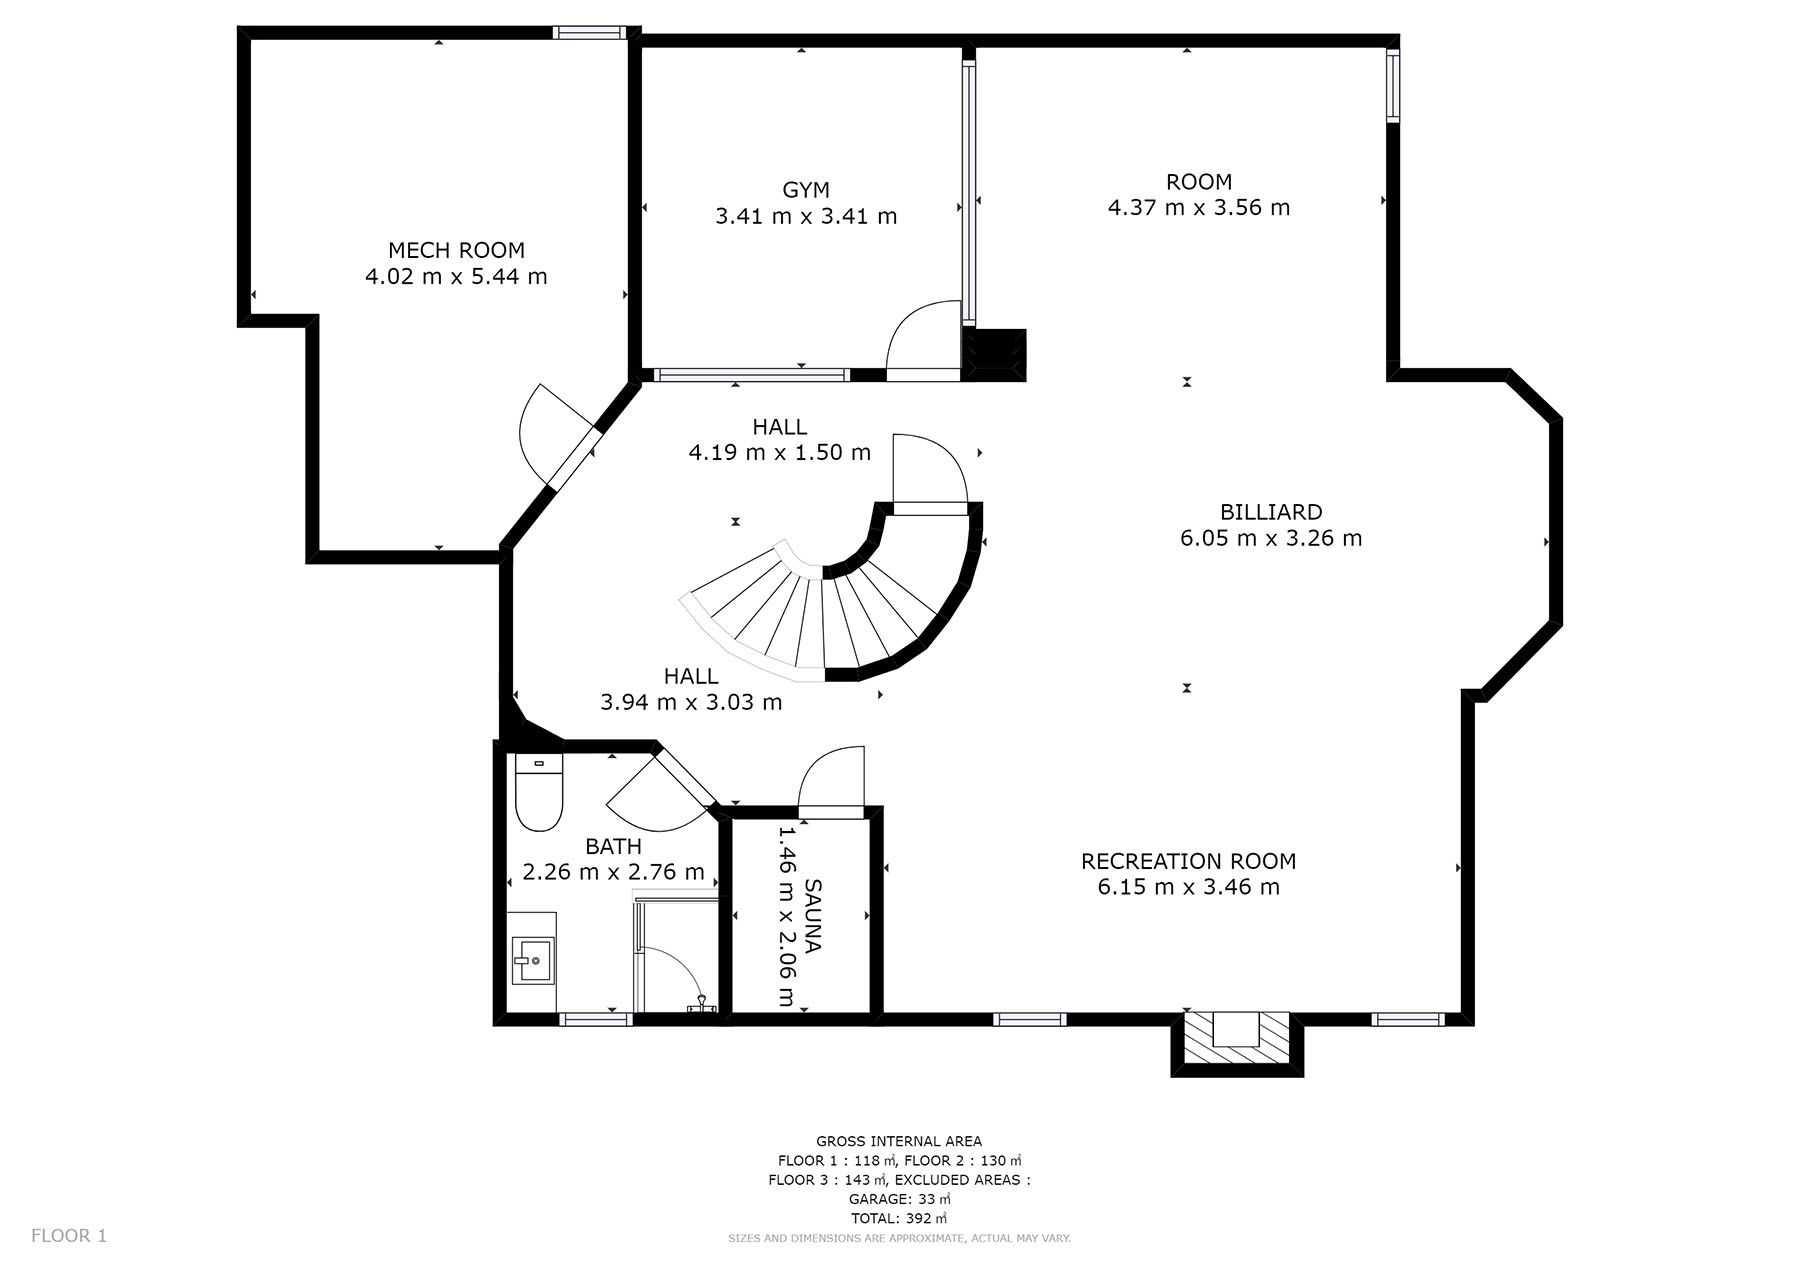 house and floor plans 2d amp 3d floor plans gta 18459